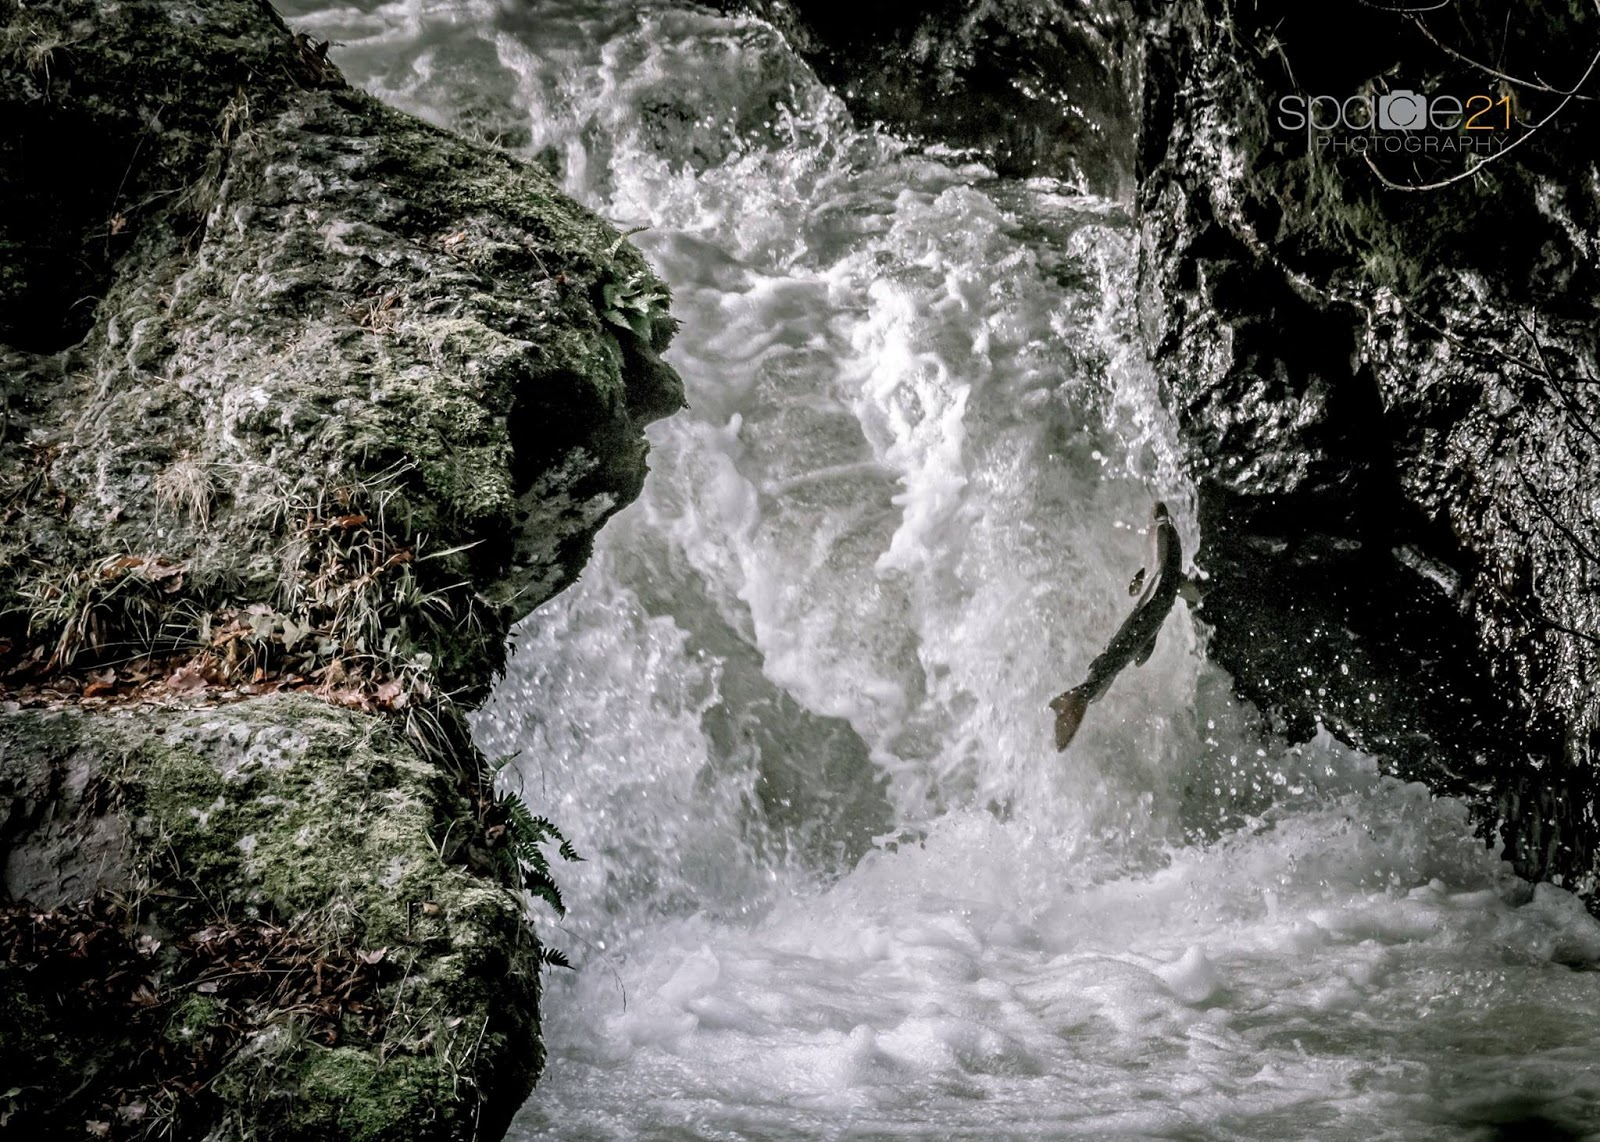 salmon fly atlantic salmon jumping at buchanty spout on